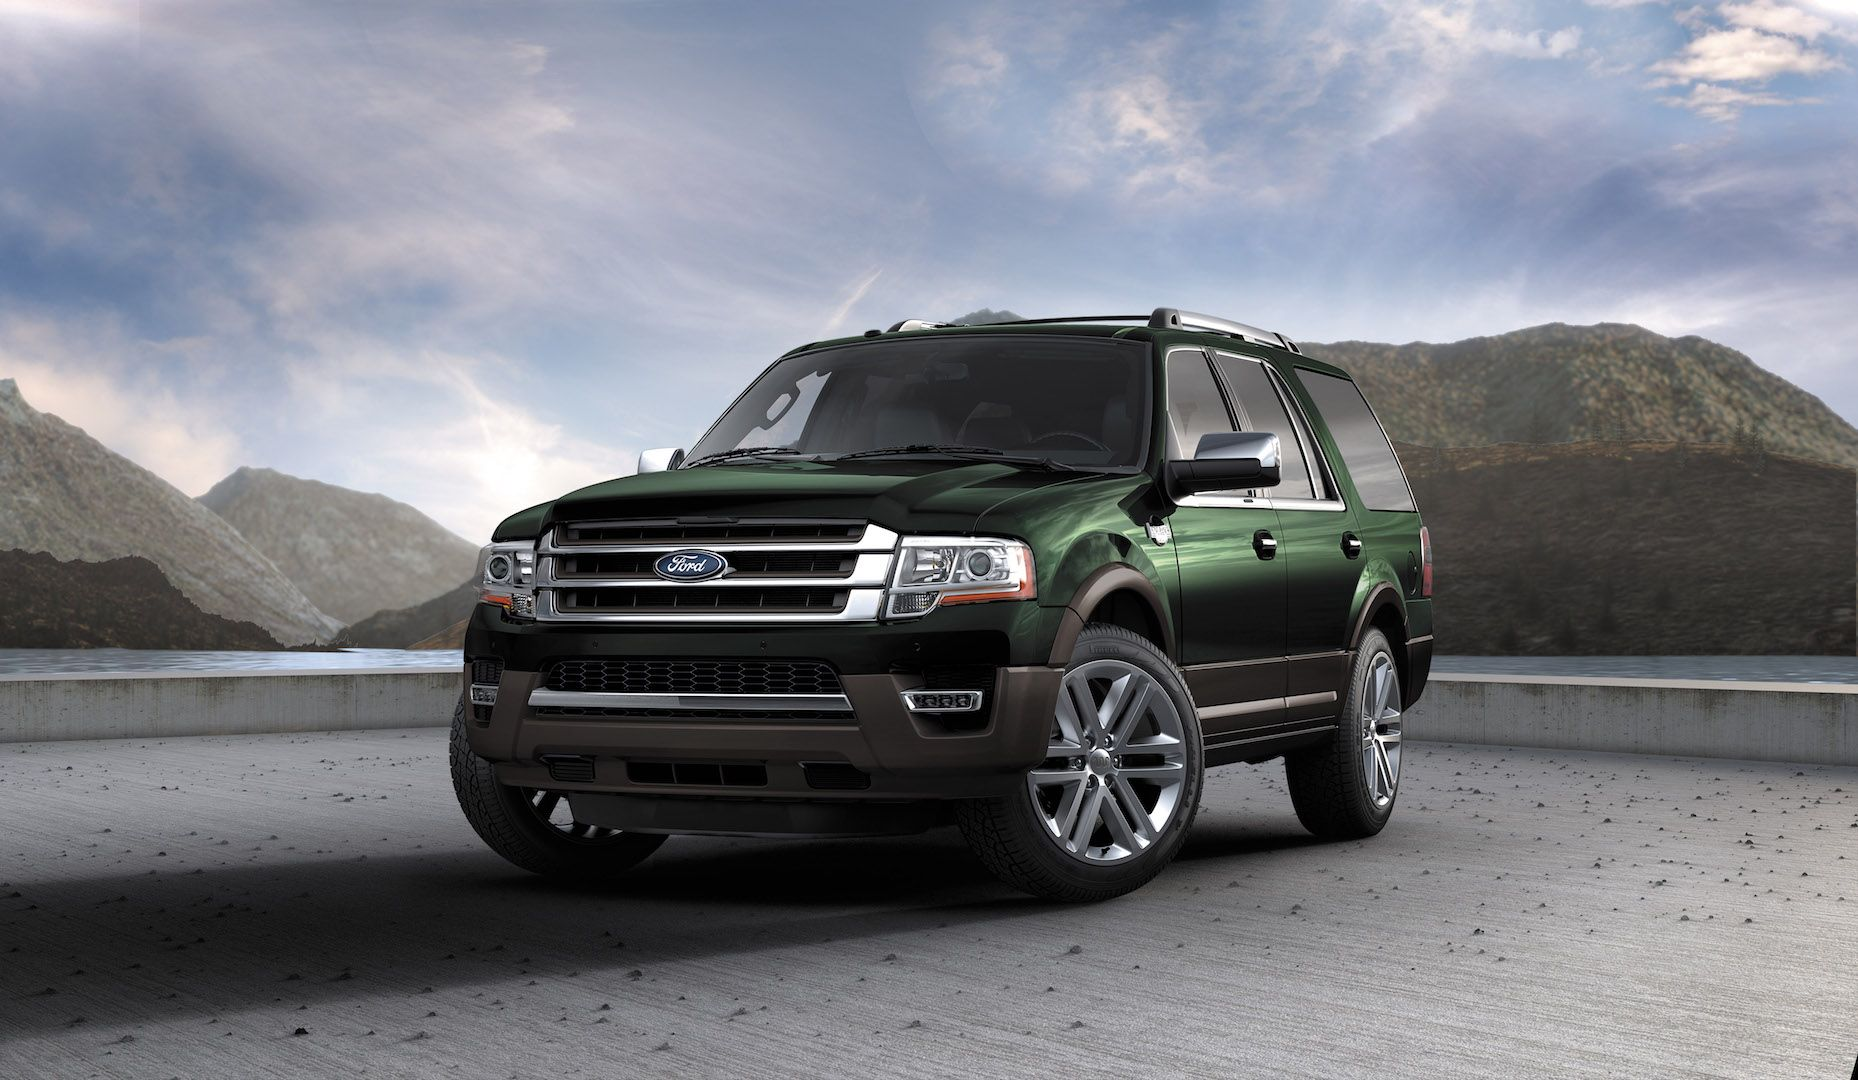 2017 ford expedition interior ford pinterest ford expedition ford and toyota tacoma review